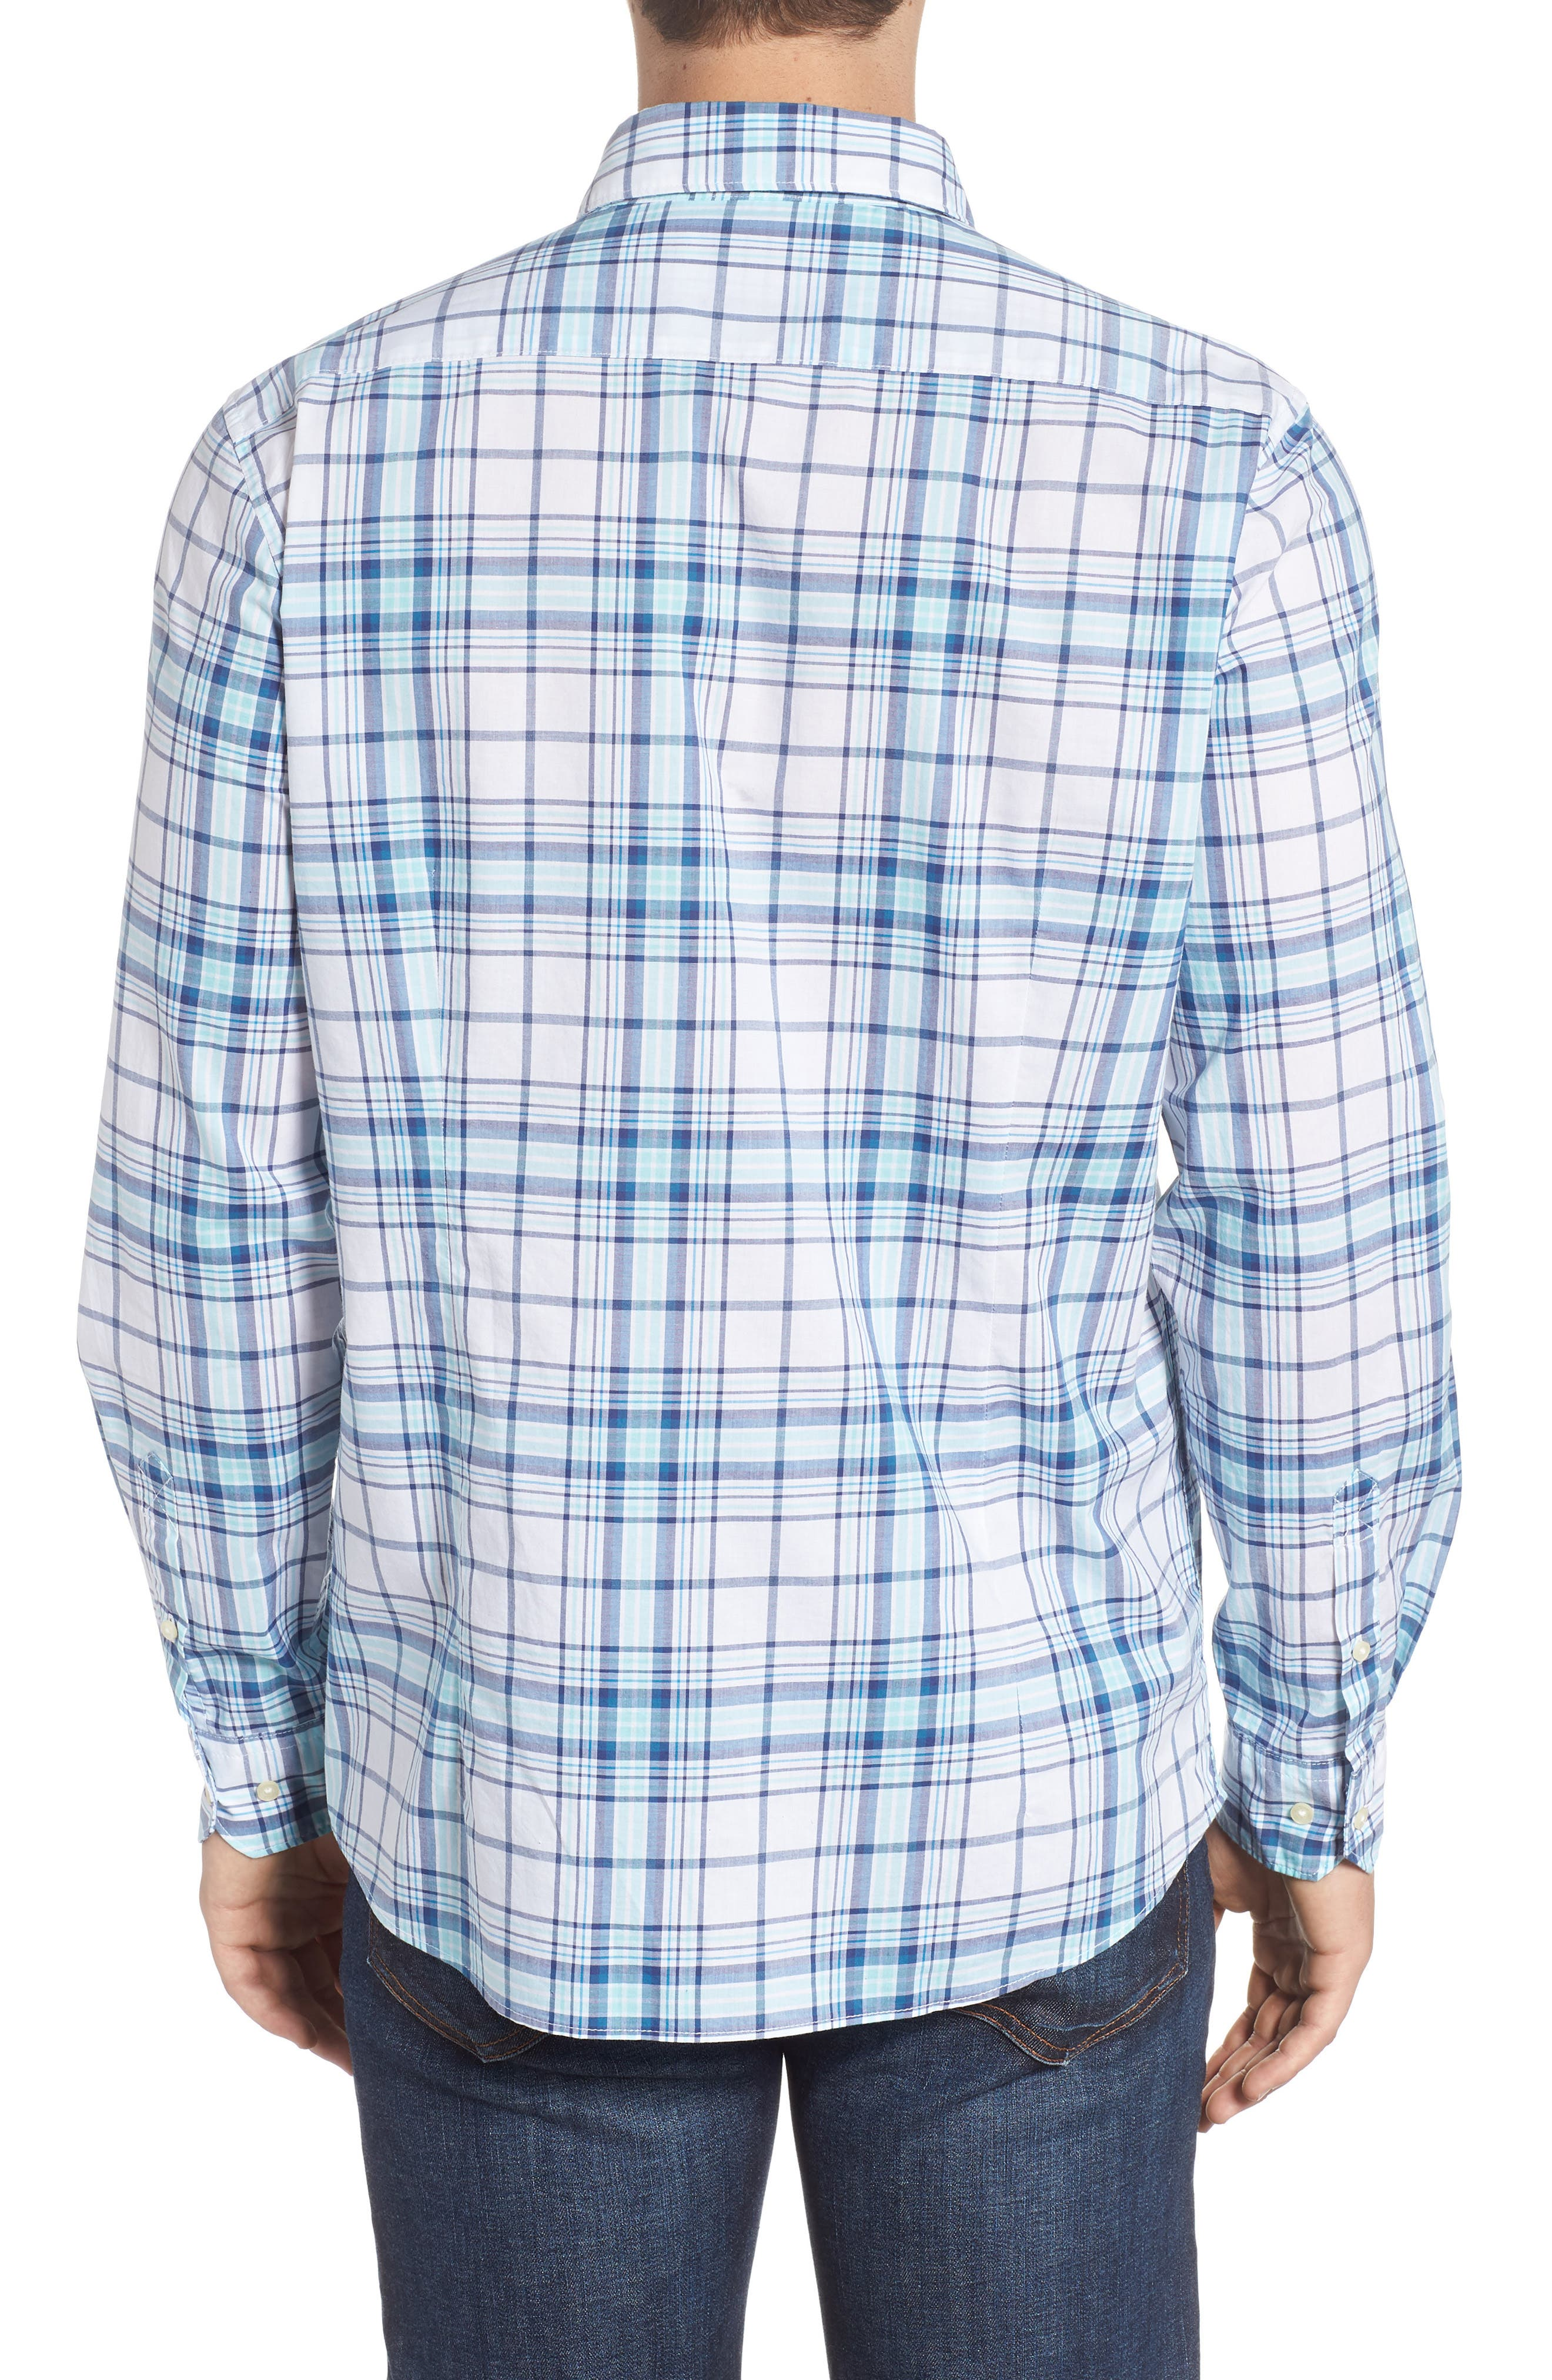 Christopher Tailored Fit Plaid Sport Shirt,                             Alternate thumbnail 3, color,                             440